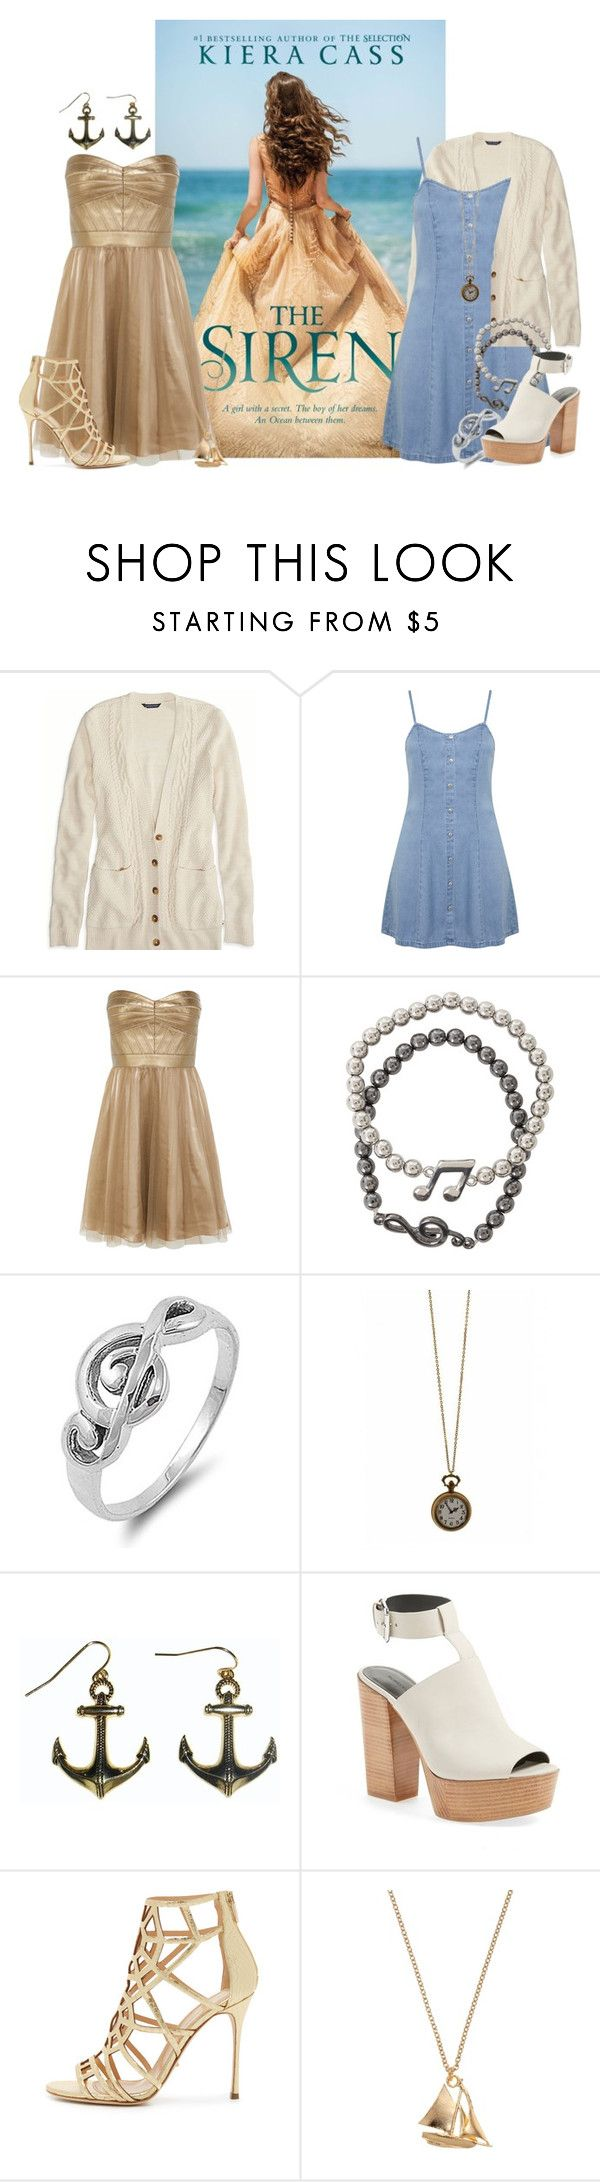 """The Siren // Kiera Cass"" by glitterbug152 ❤ liked on Polyvore featuring American Eagle Outfitters, Miss Selfridge, Coast, Rebecca Minkoff, Sergio Rossi, Alex Monroe, books, siren and allegrabounds"